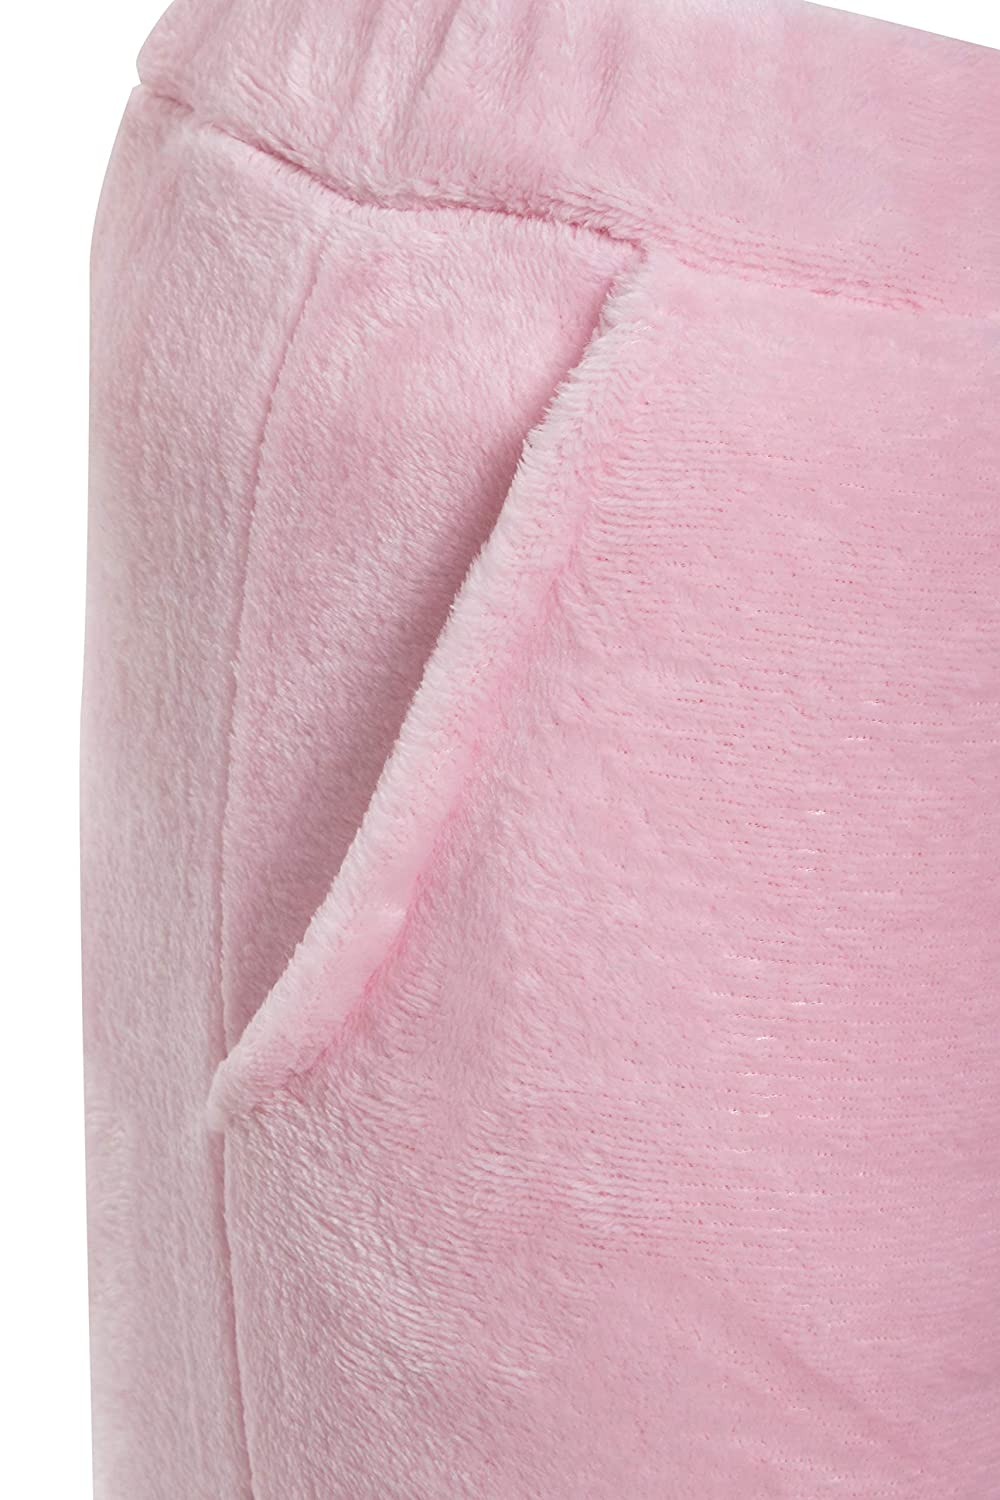 KACEY PARIS Girls Soft /& Cosy Hooded Dressing Gown